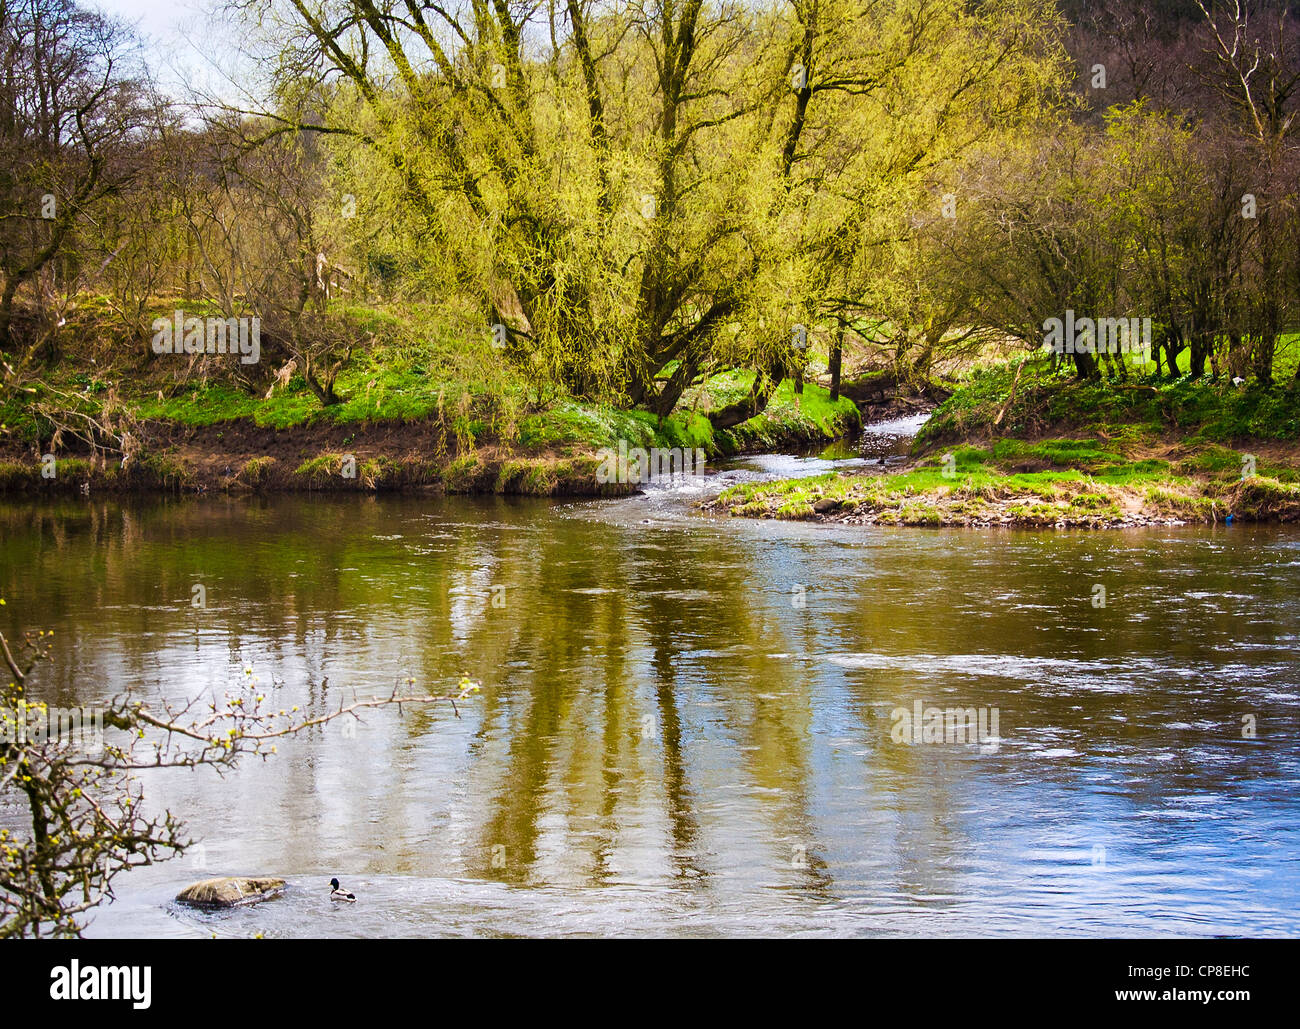 Dinckley Brook meets the mighty Ribble - Stock Image